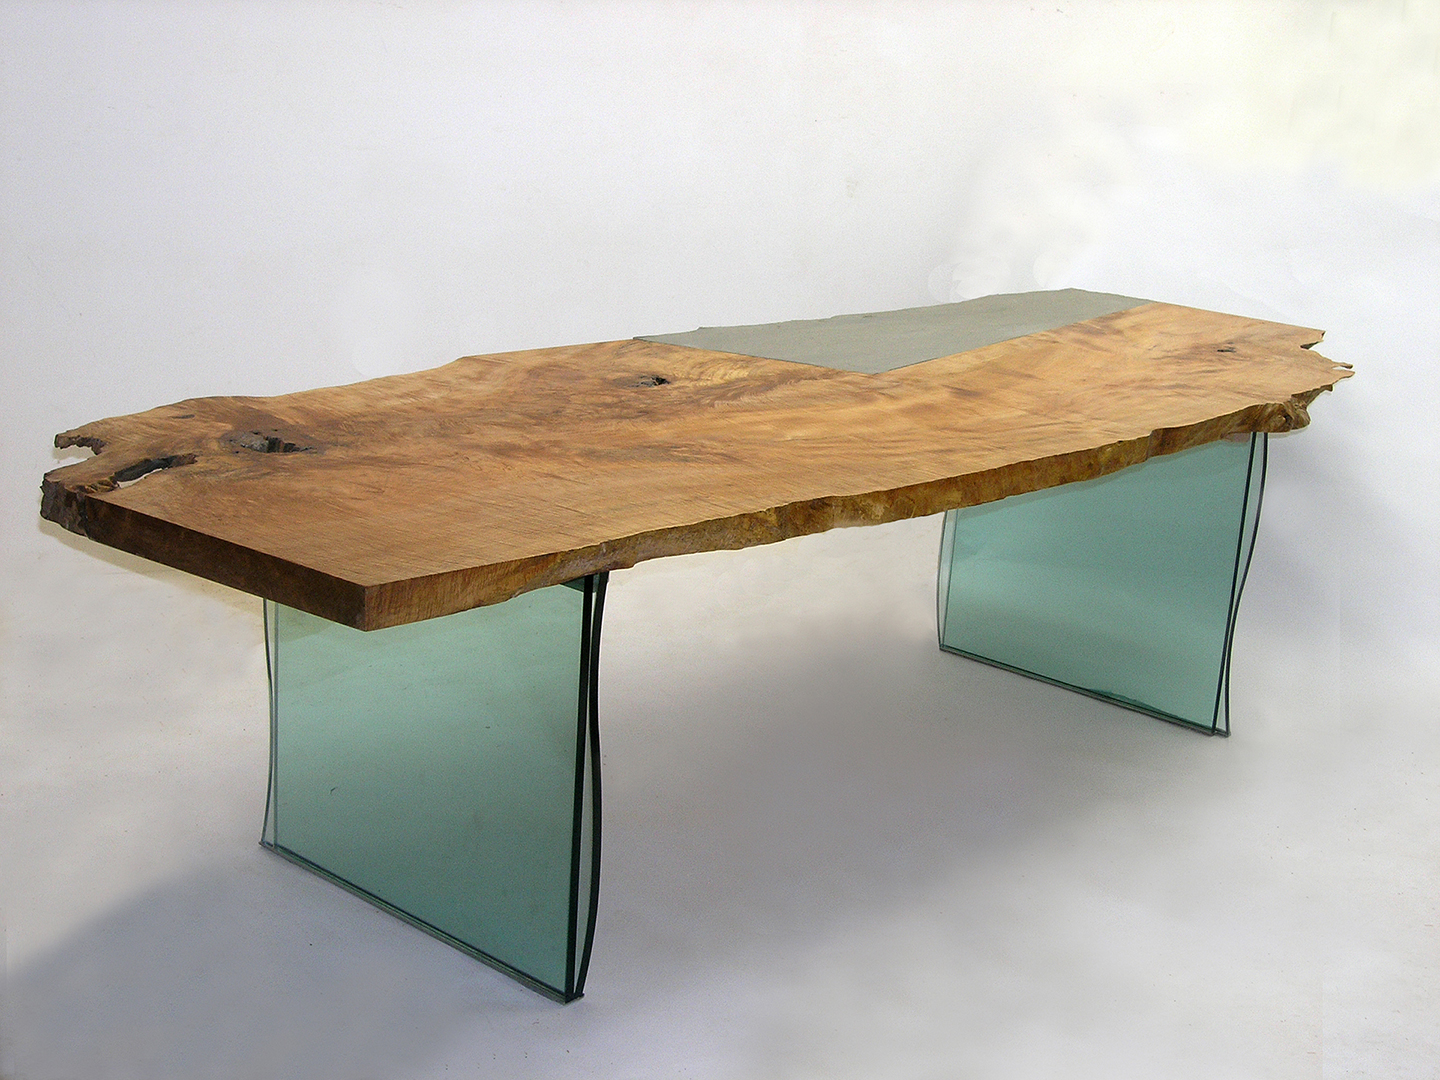 Mapleart custom wood furniture vancouver bcblue maple for Coffee tables vancouver canada